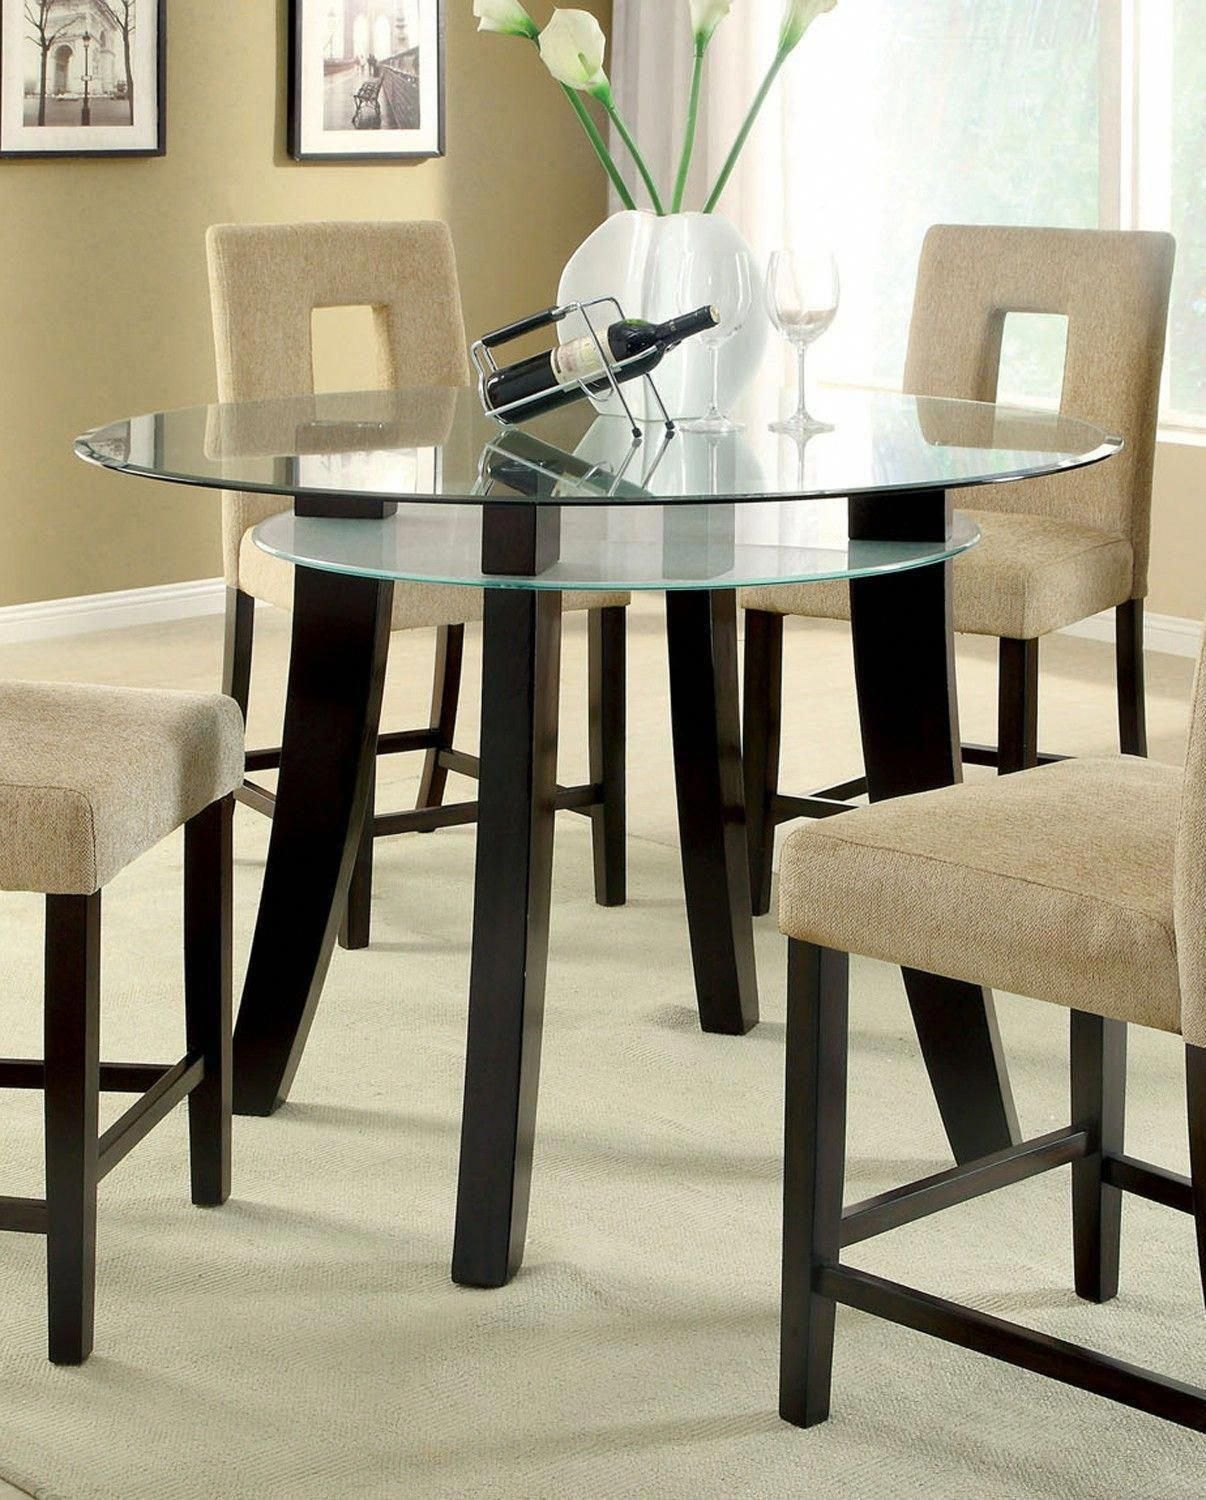 Exceptional Counter Height Table Ideas Detail Is Offered On Our Internet Site Have A Look And You Wont Be S In 2020 Dining Table Counter Height Table Pub Table Sets